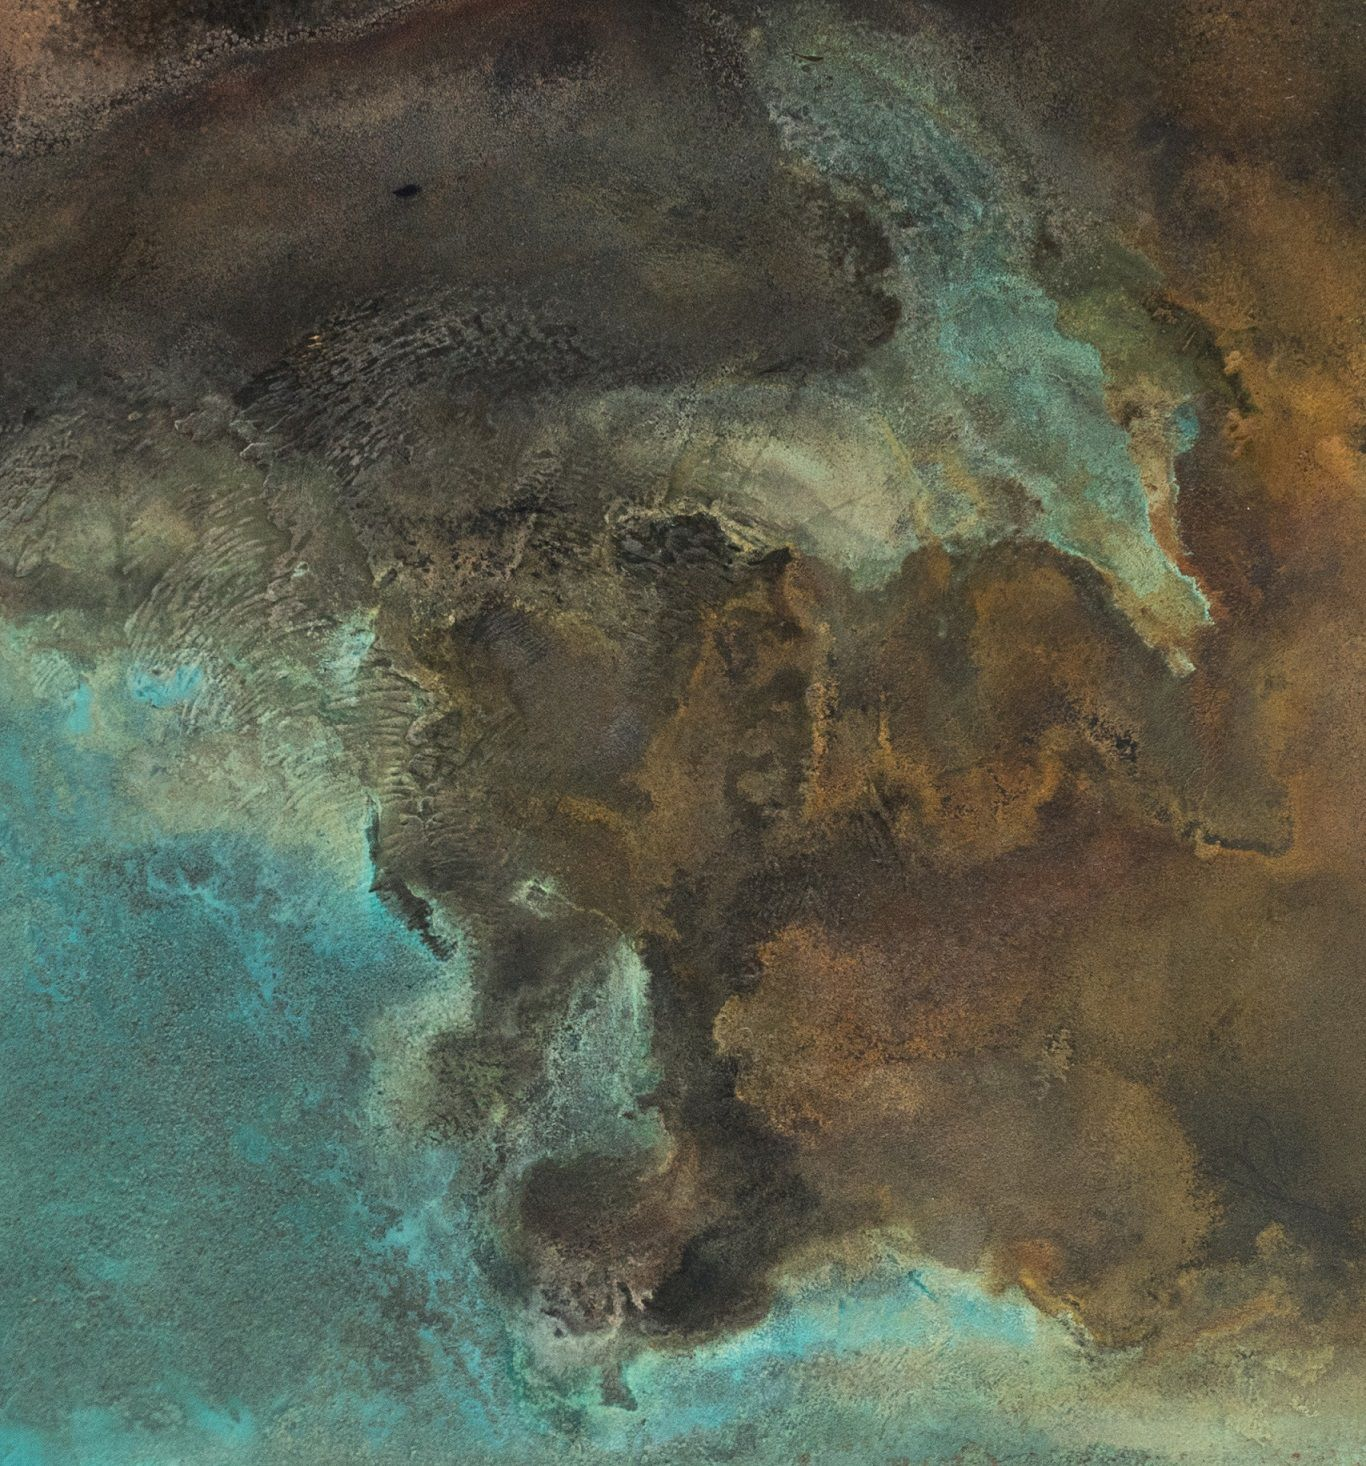 Untitled XIX-XXVI, Small size series,Frédérique Domergue,Contemporary painting, detail 1